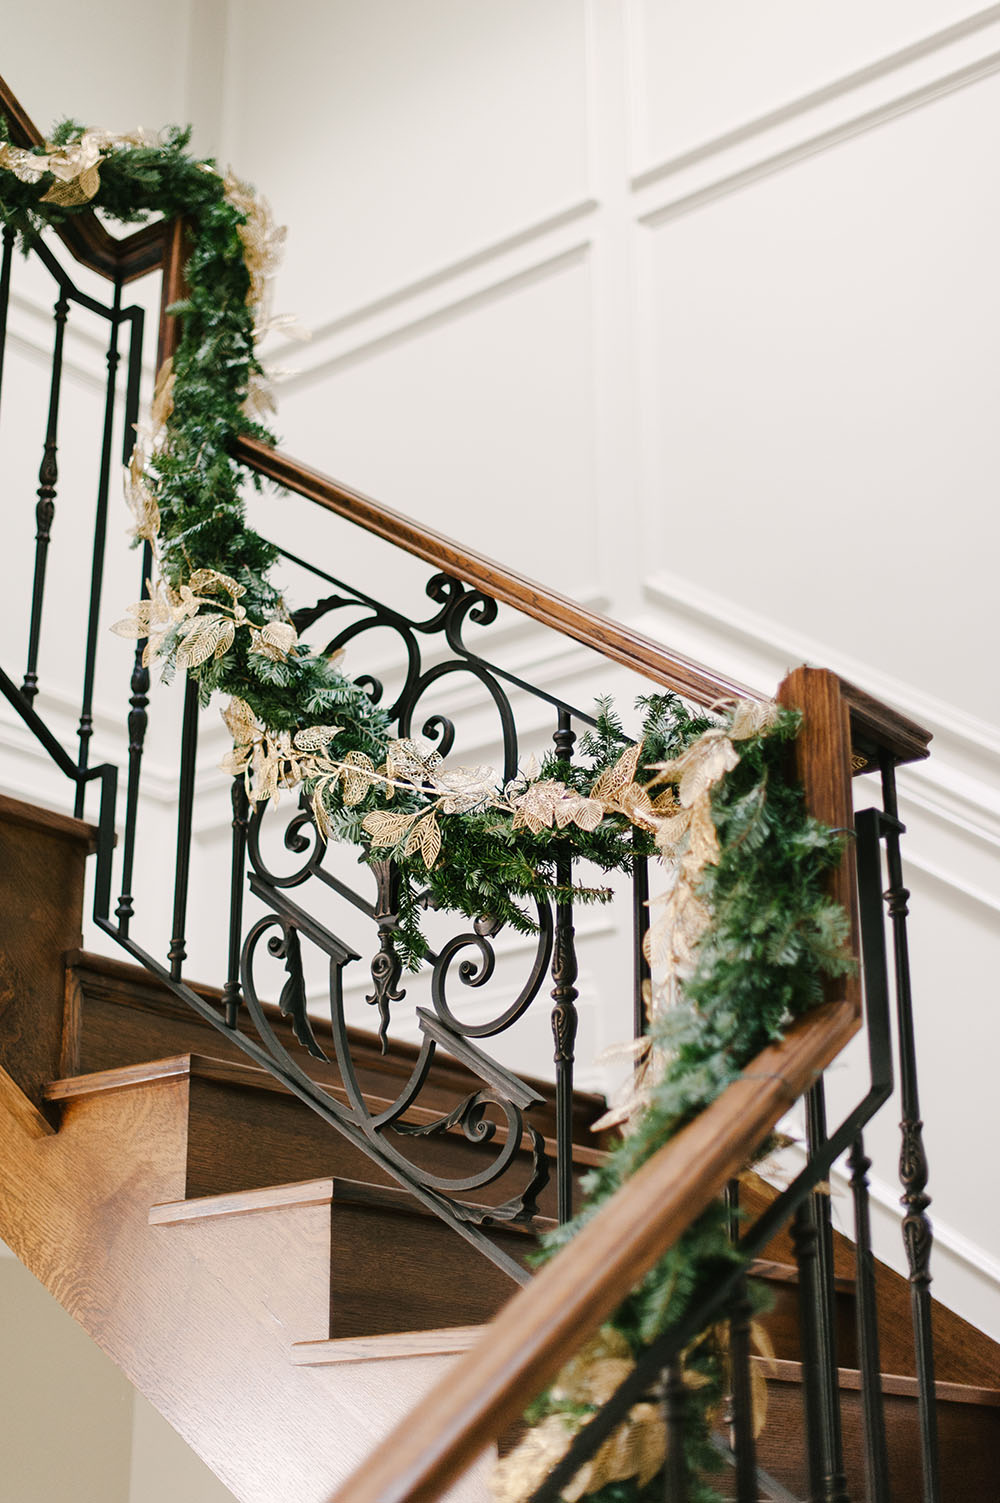 Christmas Home Tour, Classic Christmas Home, Elegant Christmas Home, Luxe Christmas Home, Luxe Christmas Decor, Perfect Stair Garland, Garland Railings, Elegant Christmas Garland